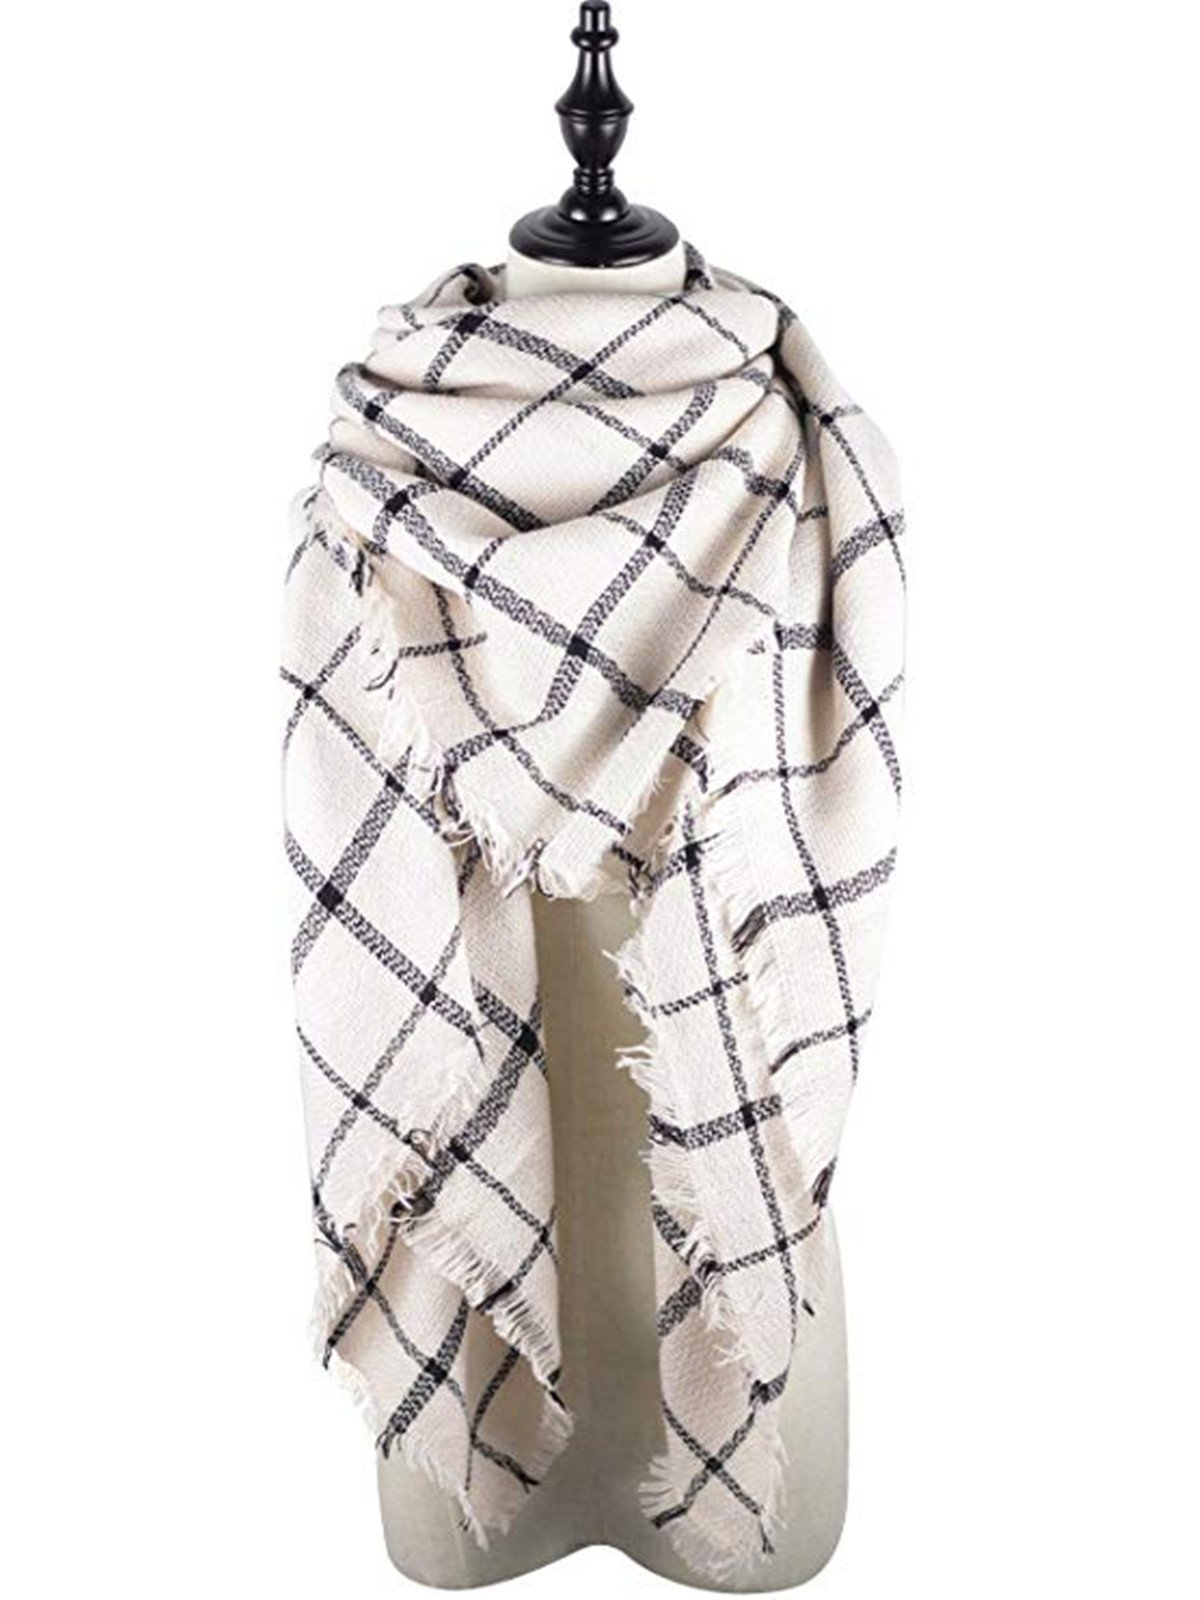 Century Star Women's Fall Winter Scarf Classic Tassel Plaid Scarf Warm Tartan Wrap Shawl White Black Stripe